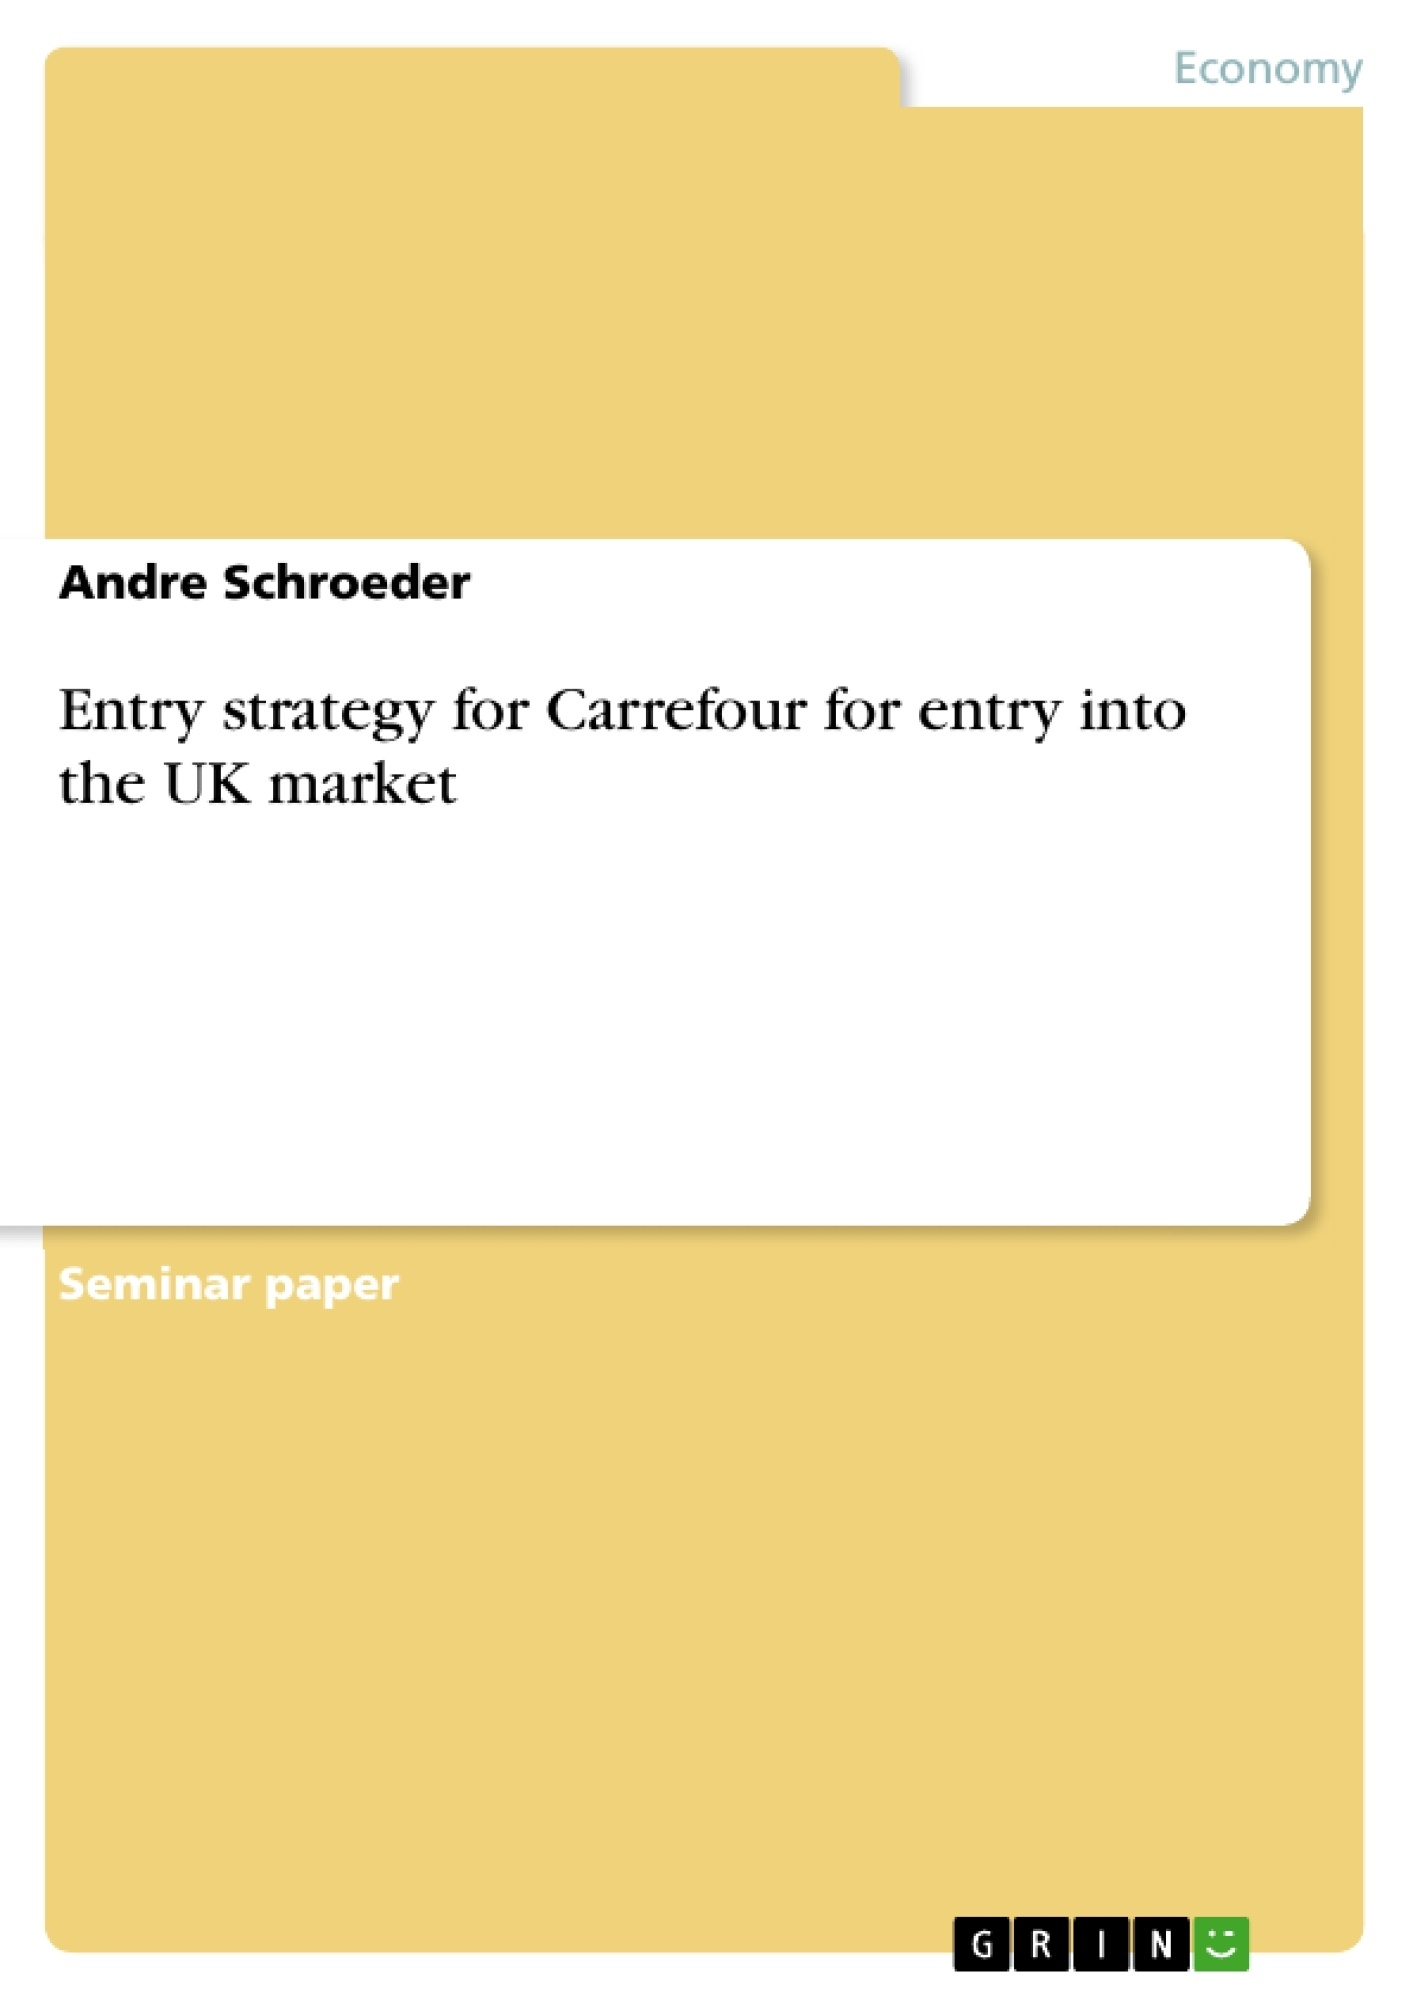 Title: Entry strategy for Carrefour for entry into the UK market